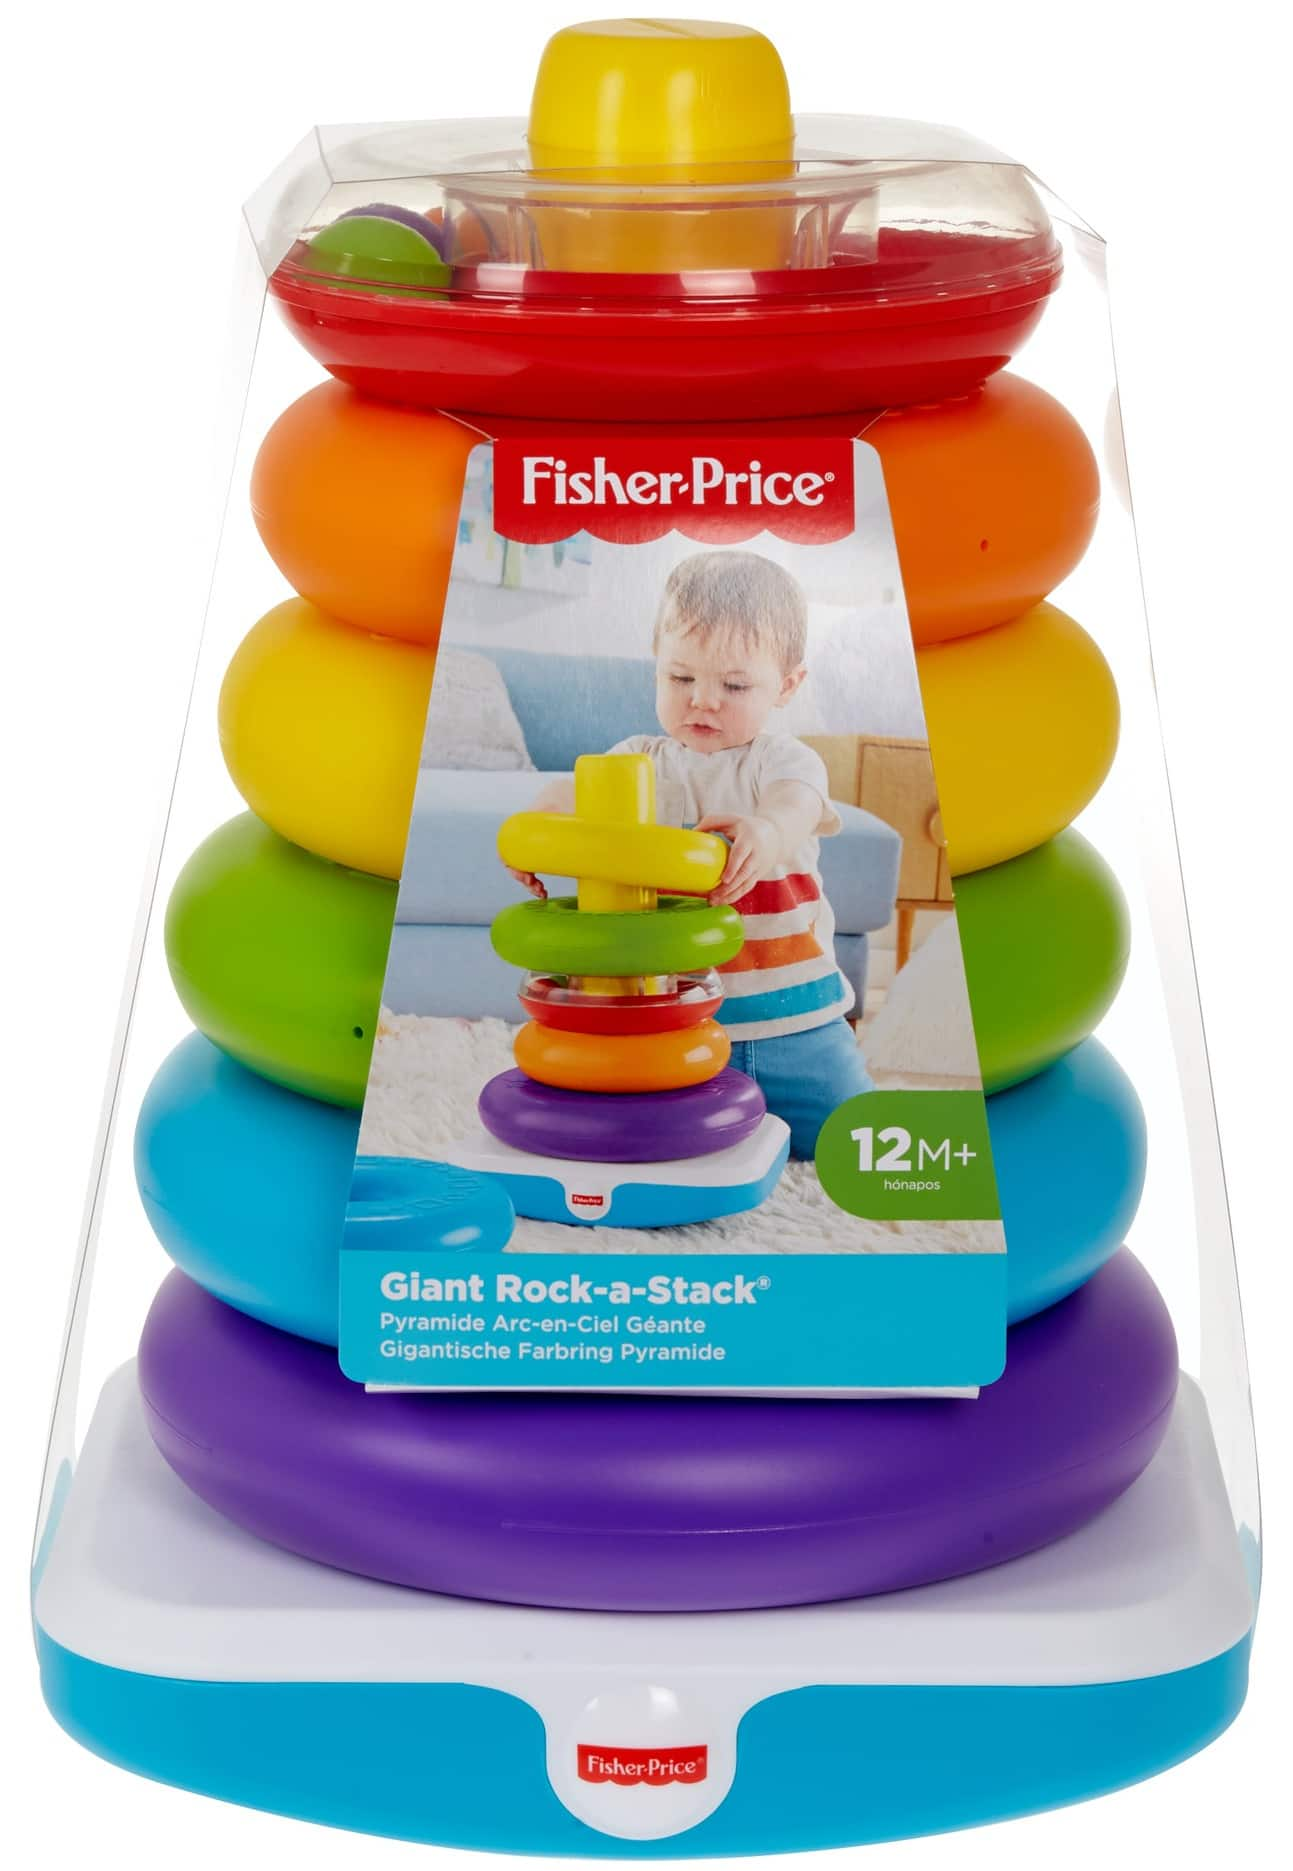 Fisher-Price Giant Rock-a-Stack w/ 6-Colorful Rings $10 at Walmart